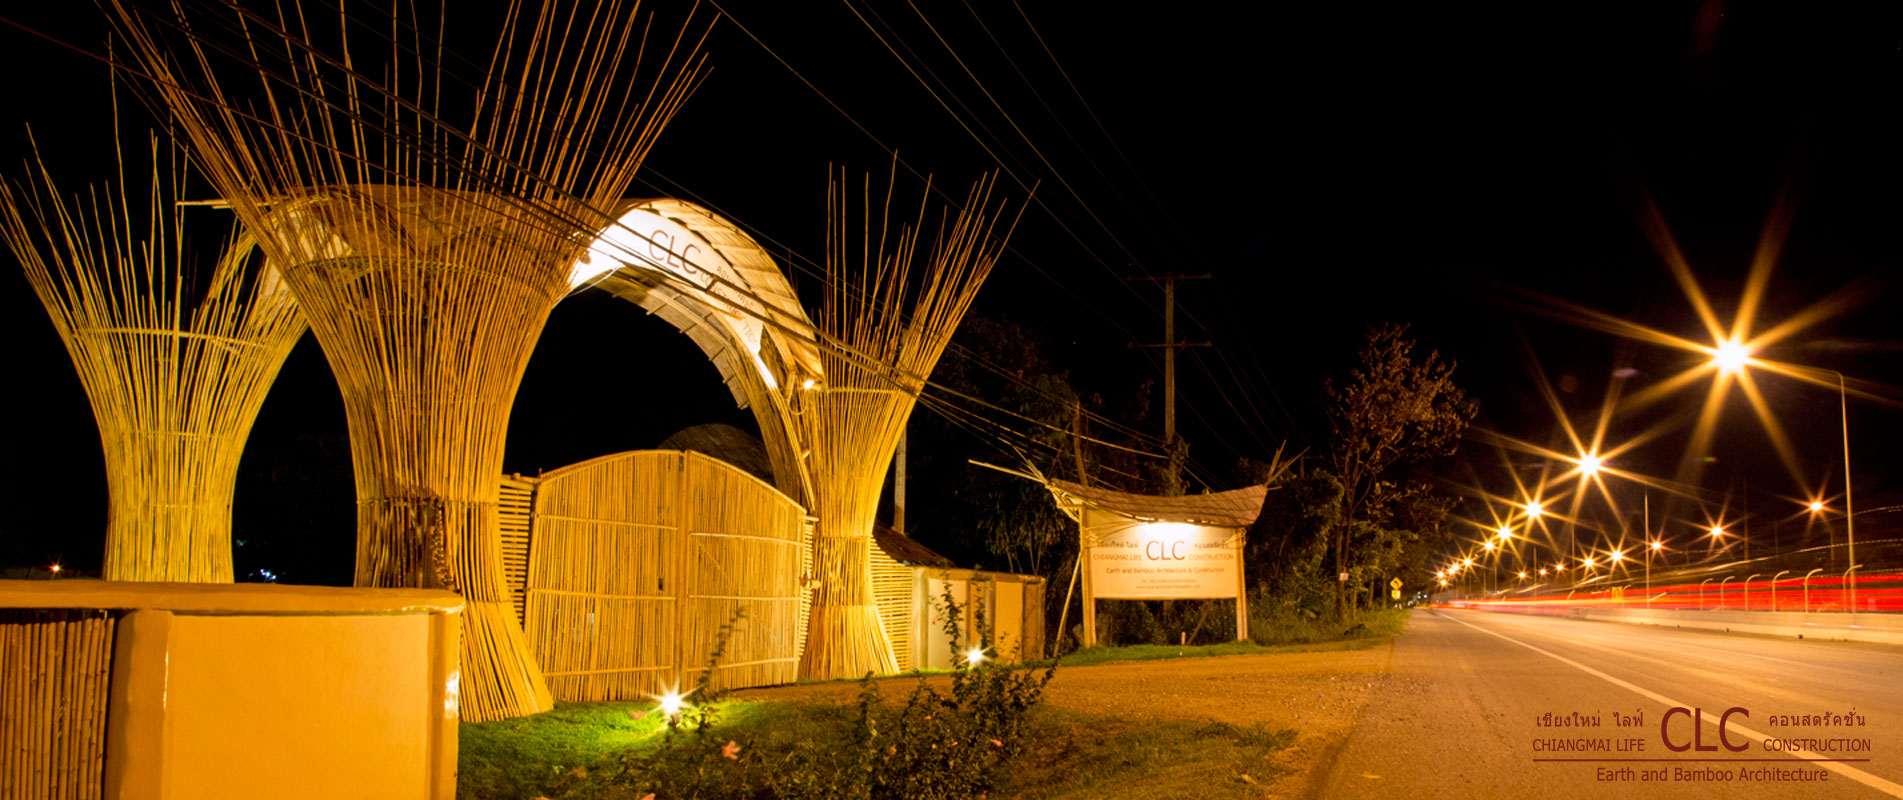 Entrance Gate At Clc Bamboo Architecture Cla